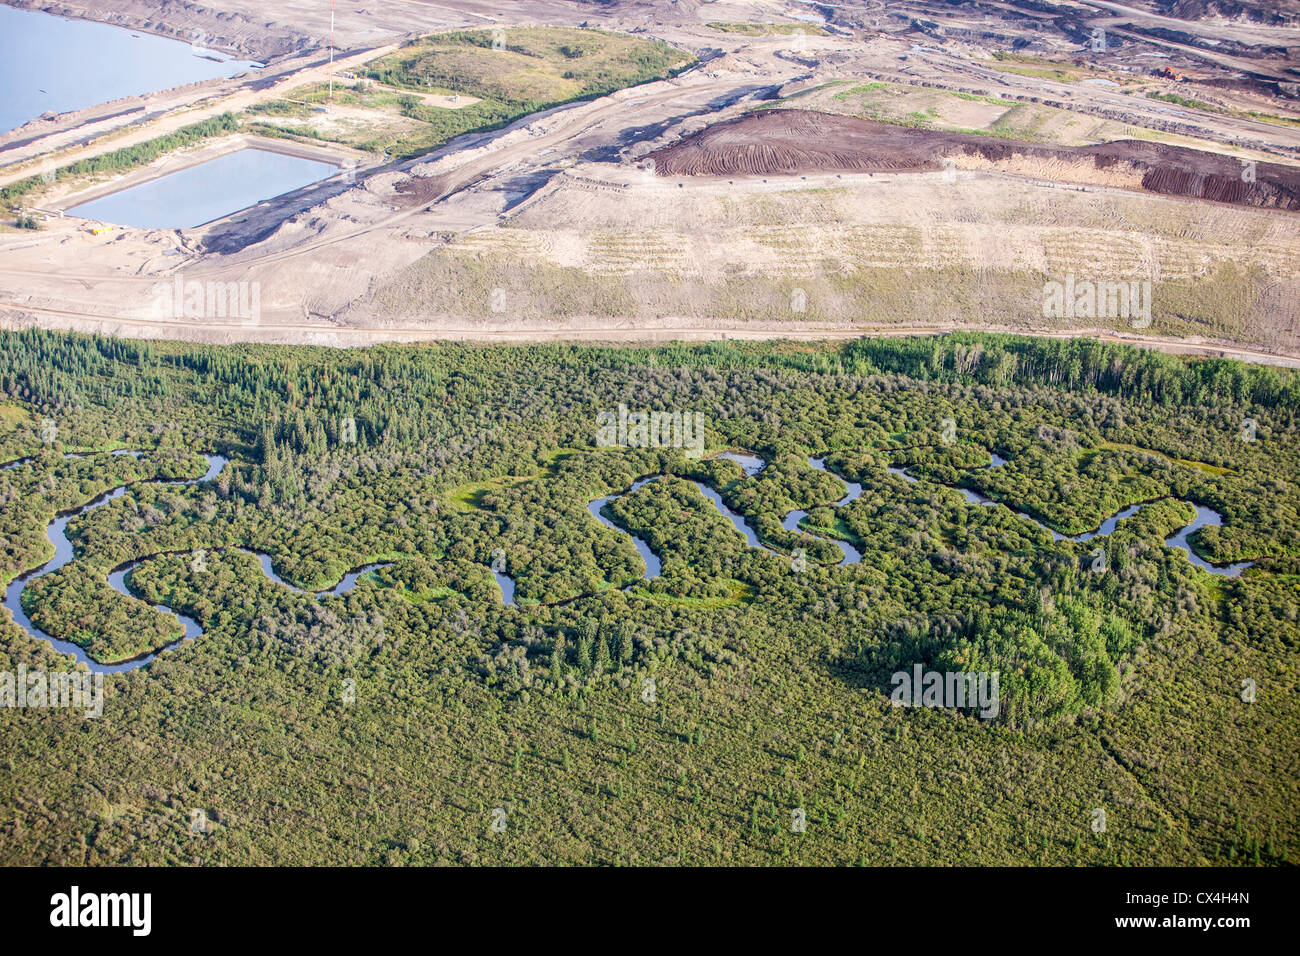 boreal-forest-trees-clear-felled-to-make